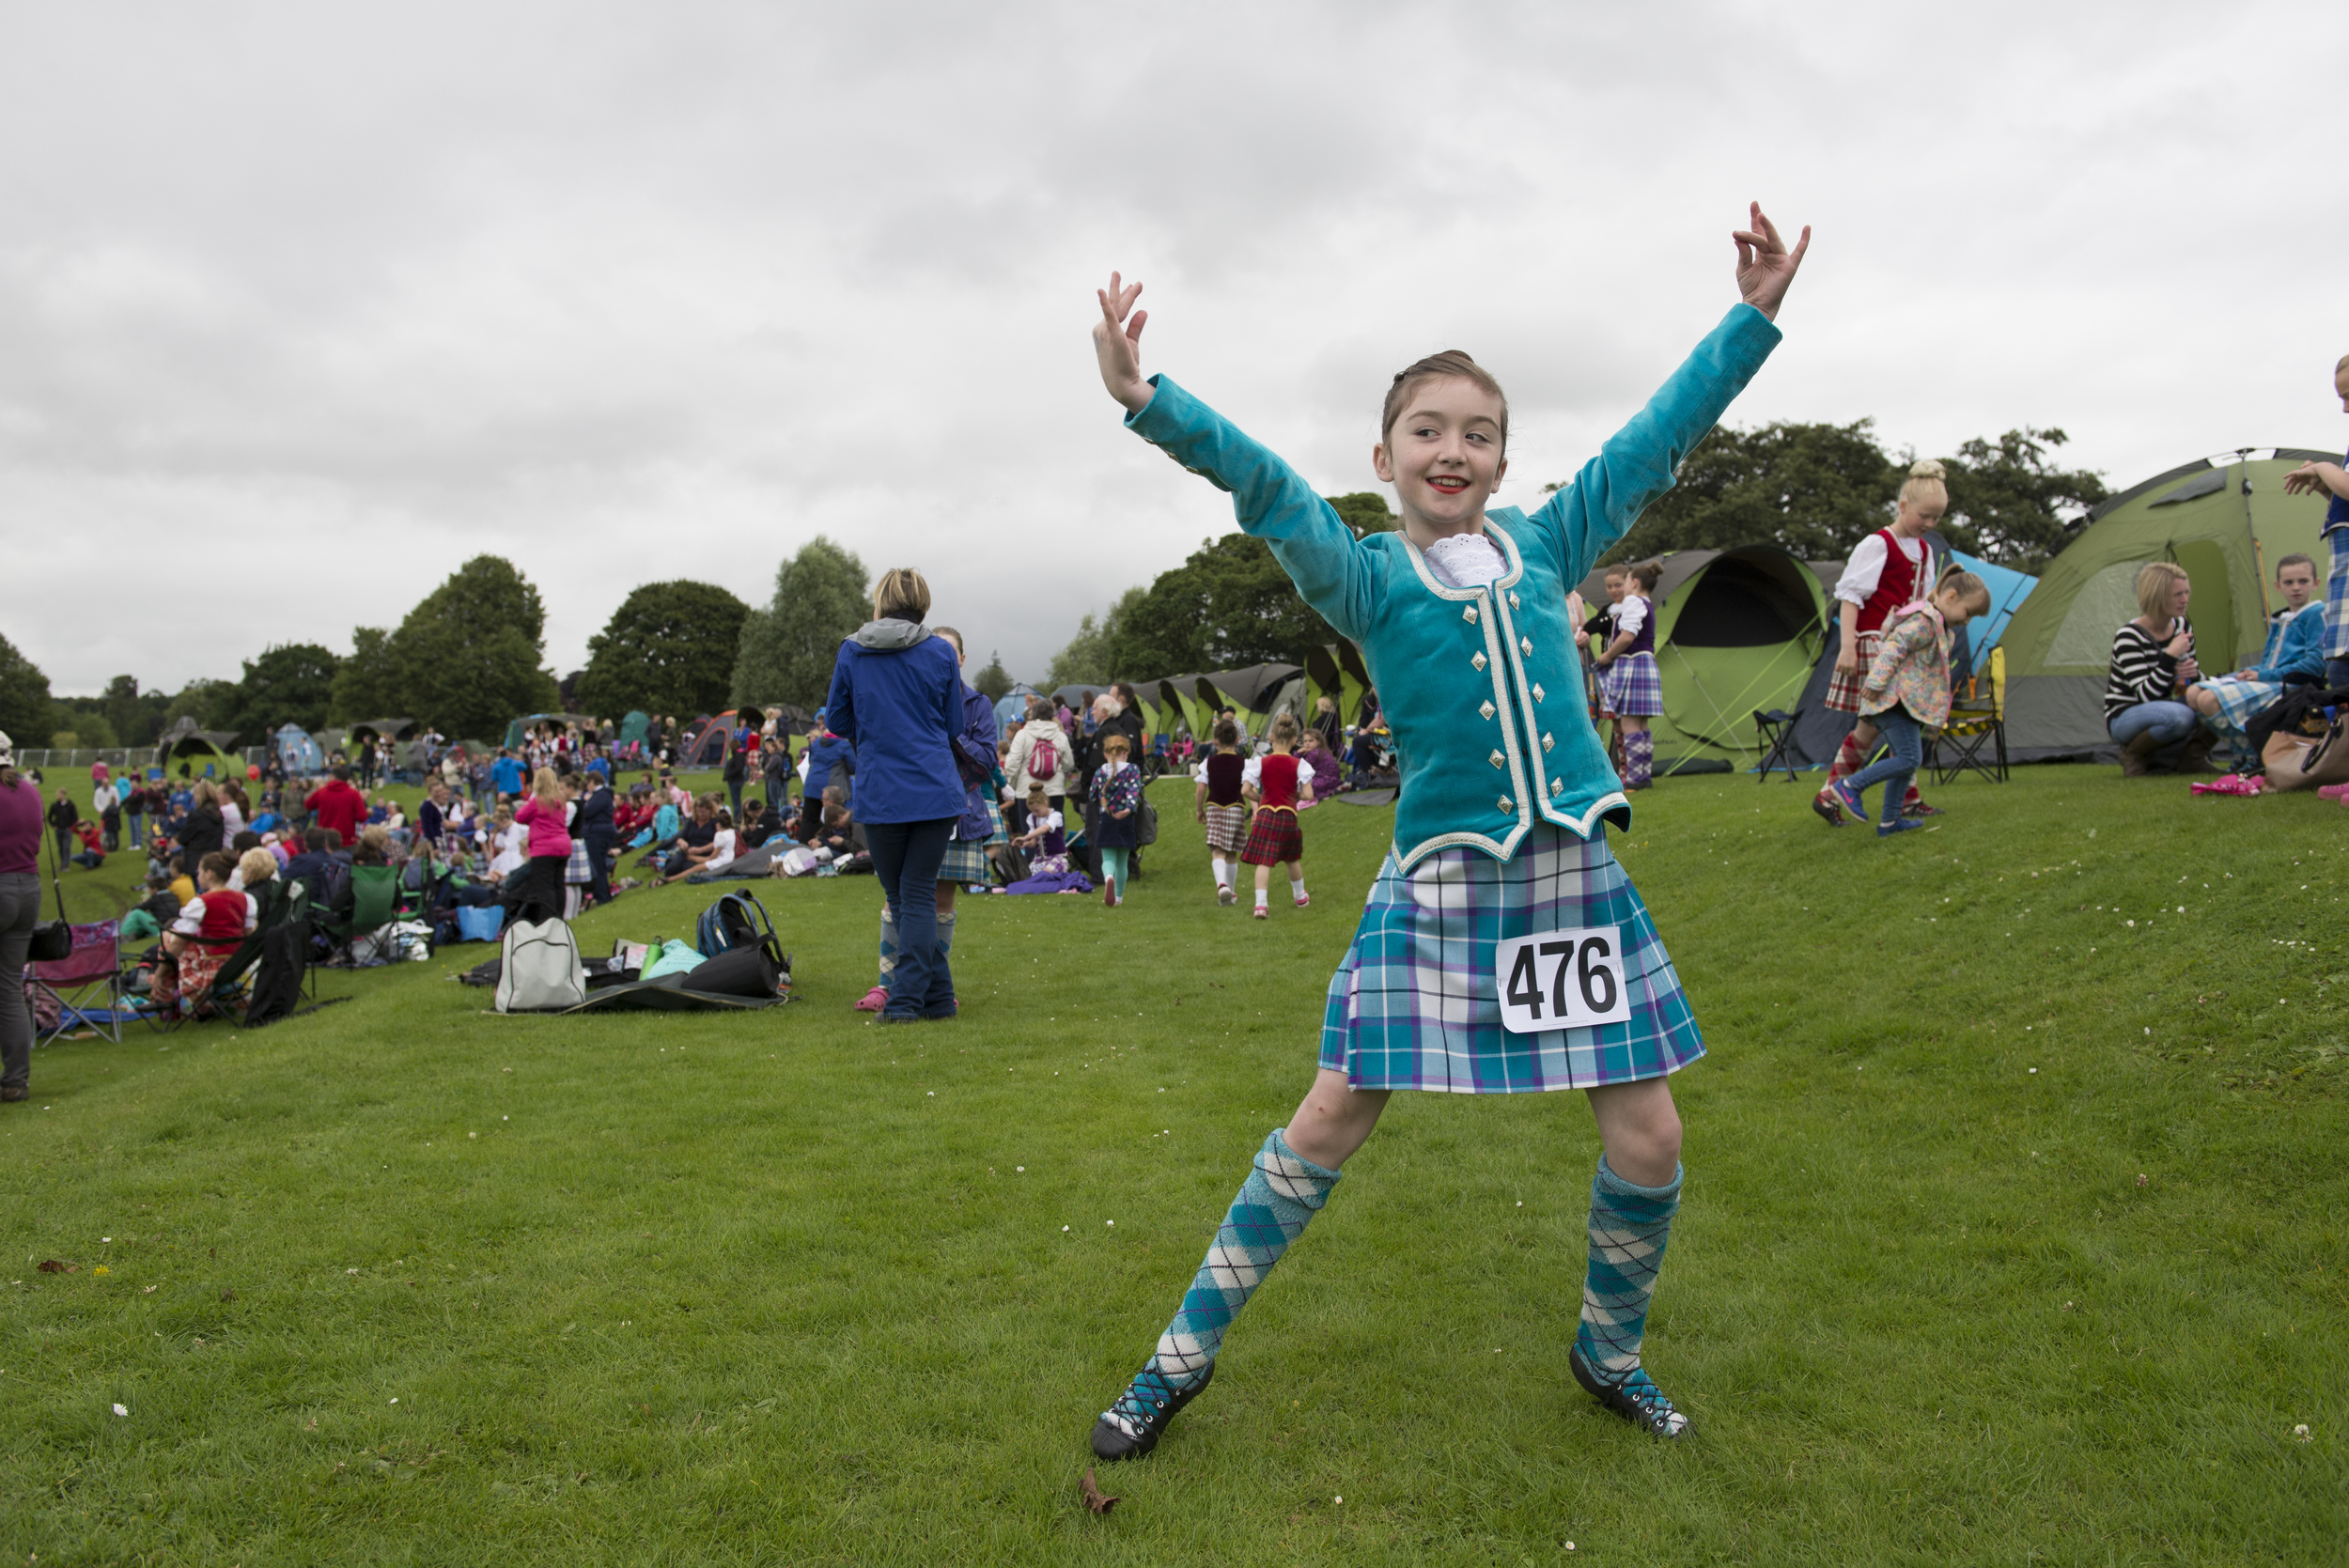 Erynn Kirk, 10, practices the Highland Lilt outside her tent before the Intermediate Highland Dance Competition at the Perth Highland Games in Perth, Scotland. Erynn practices Highland Dancing three times a week, working her way to becoming a Premier dancer.